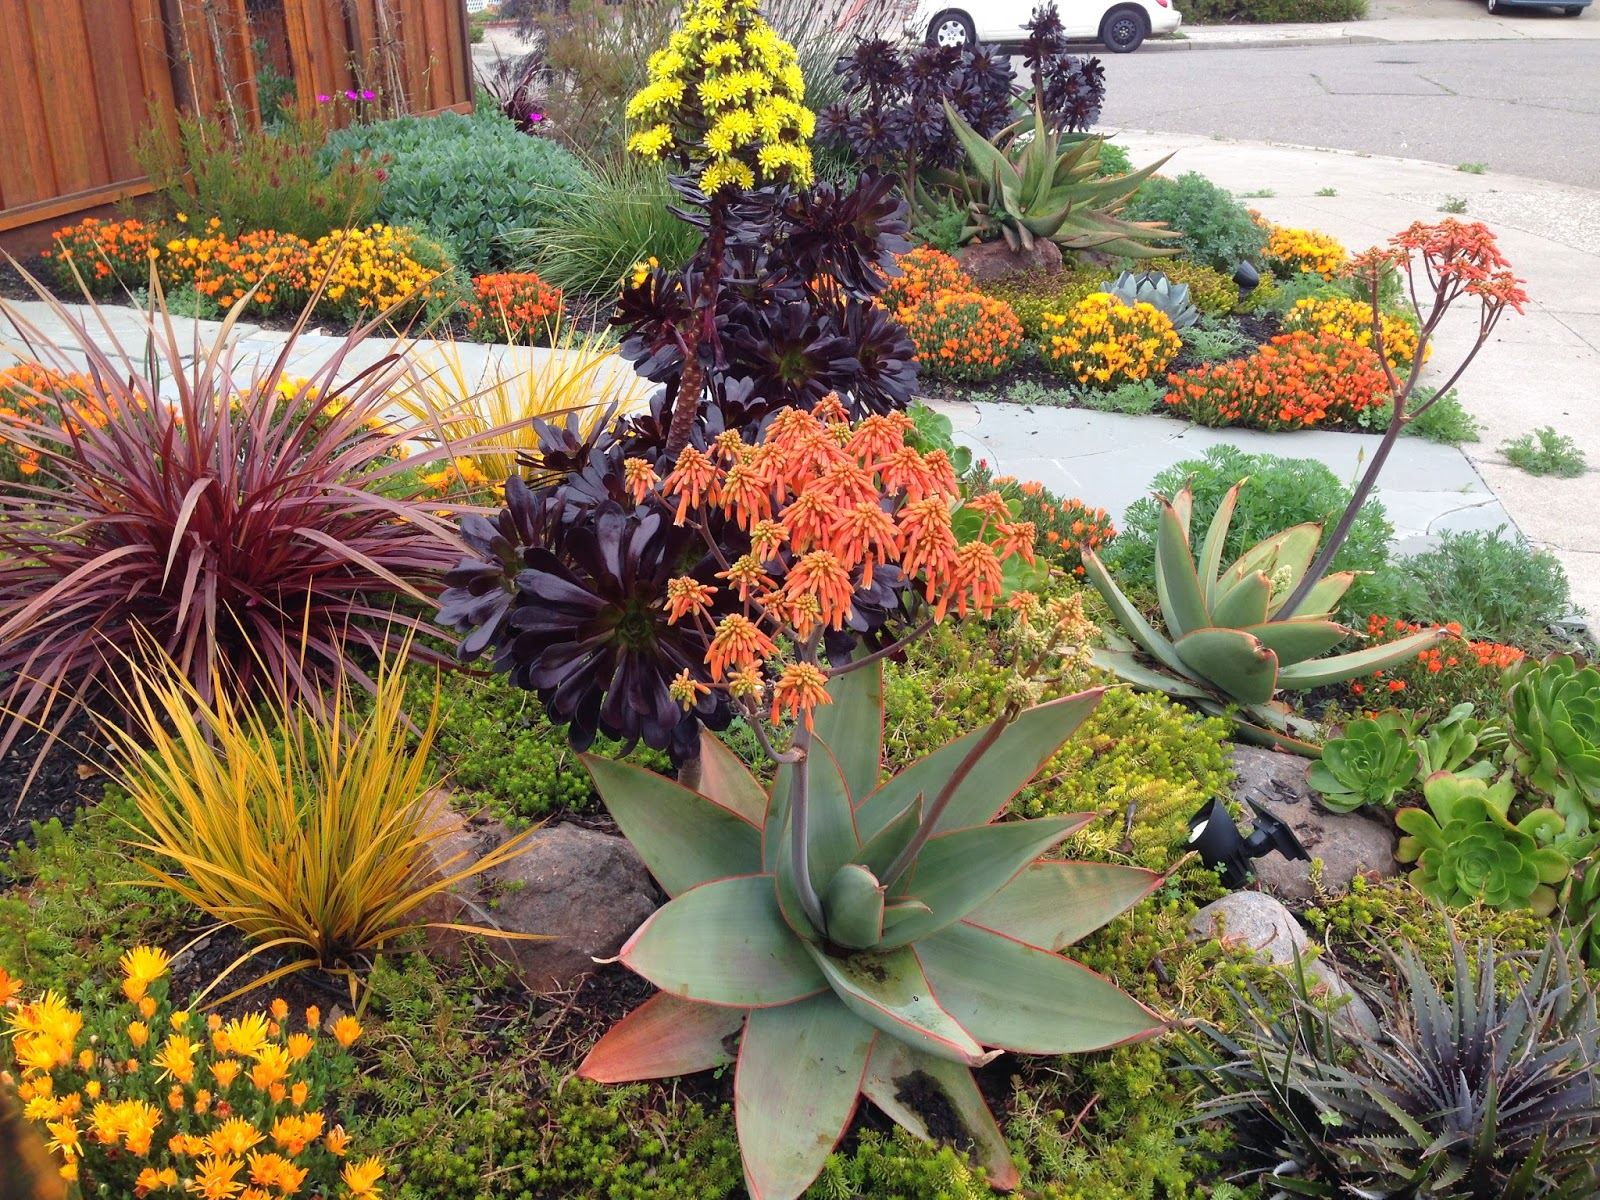 View all southern california landscaping pictures - Farallon Gardens Alameda Drought Tolerant Garden February Blooms